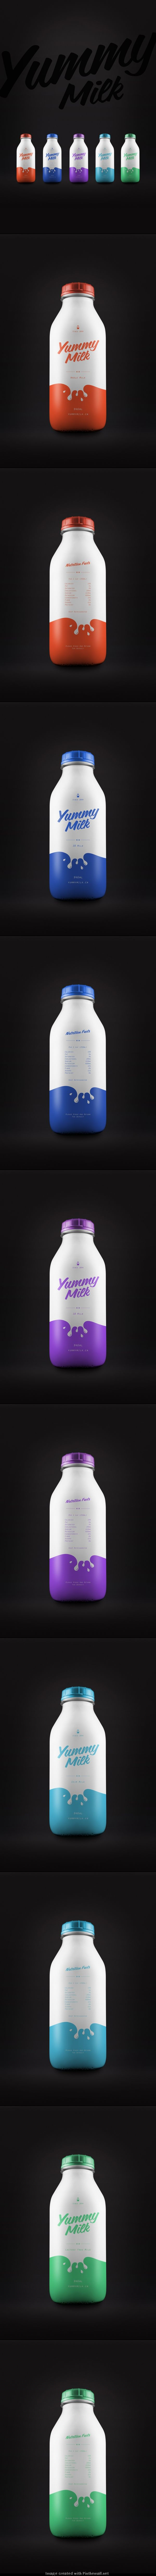 YUMMY MILK by simon spring, via Behance *** #package #packagedesign #behance